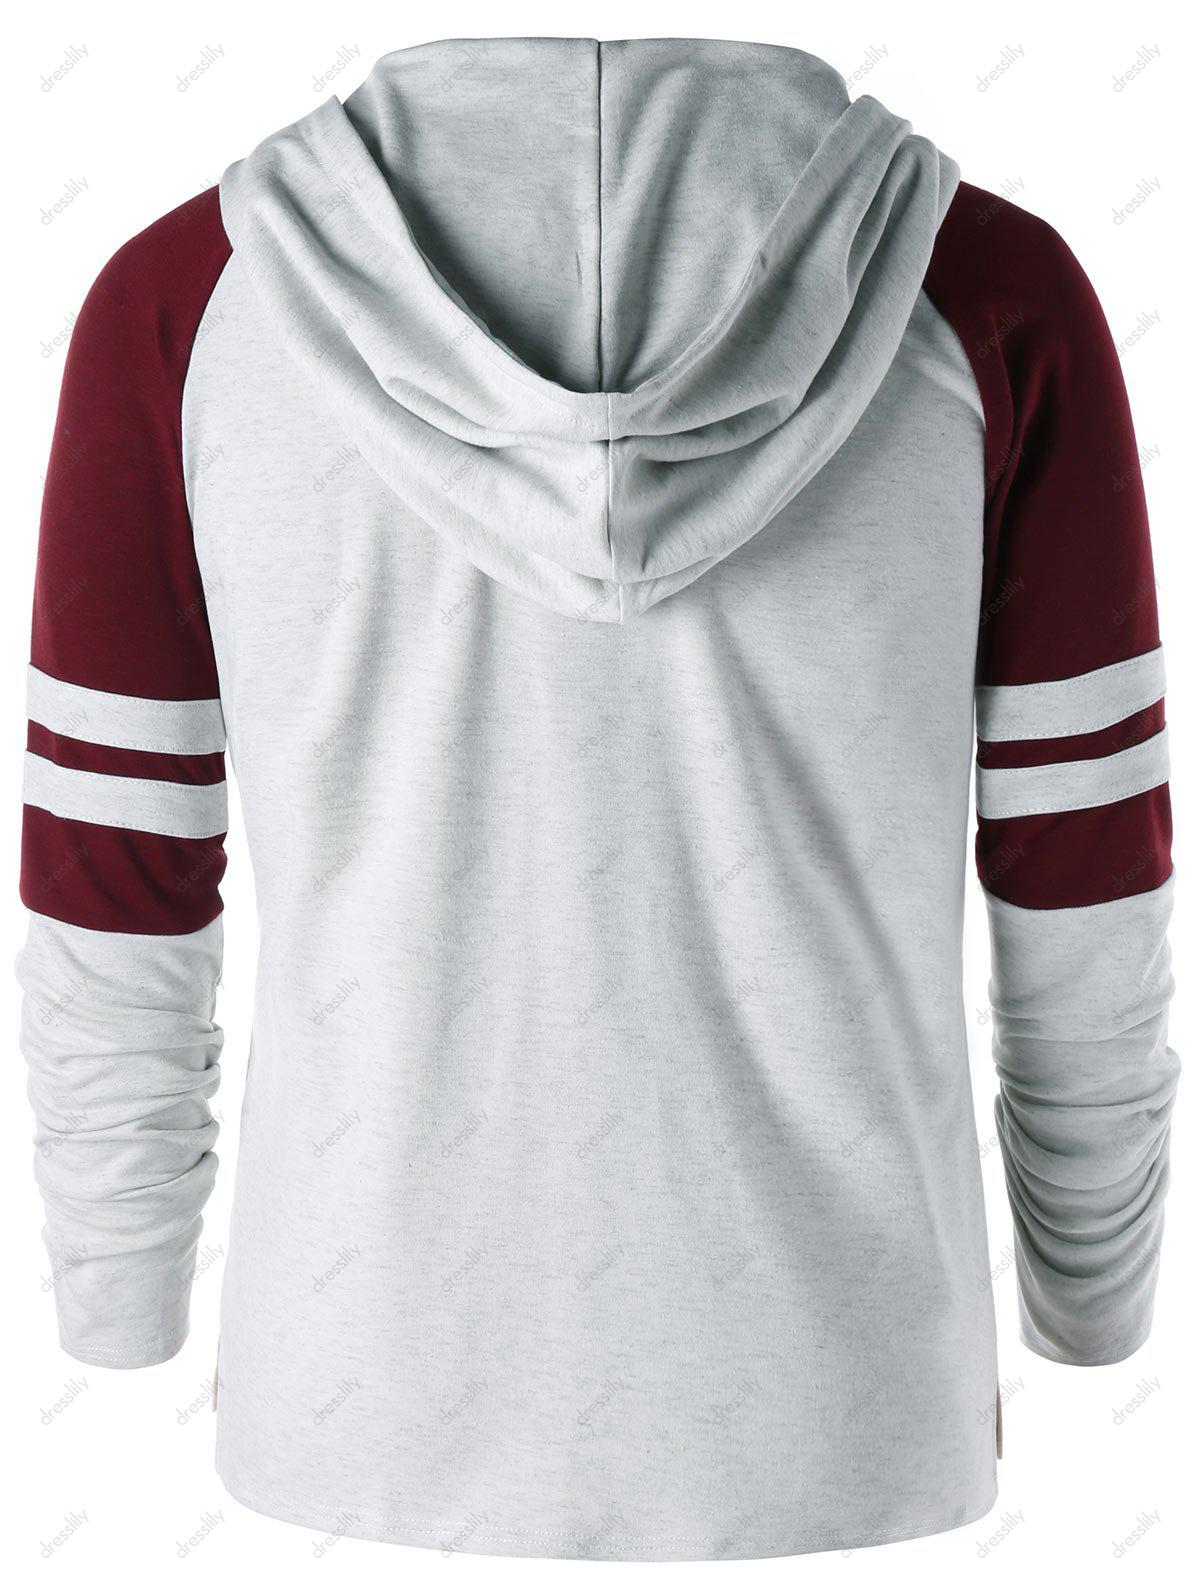 Raglan Sleeve Two Tone Hoodie - GRAY/RED M